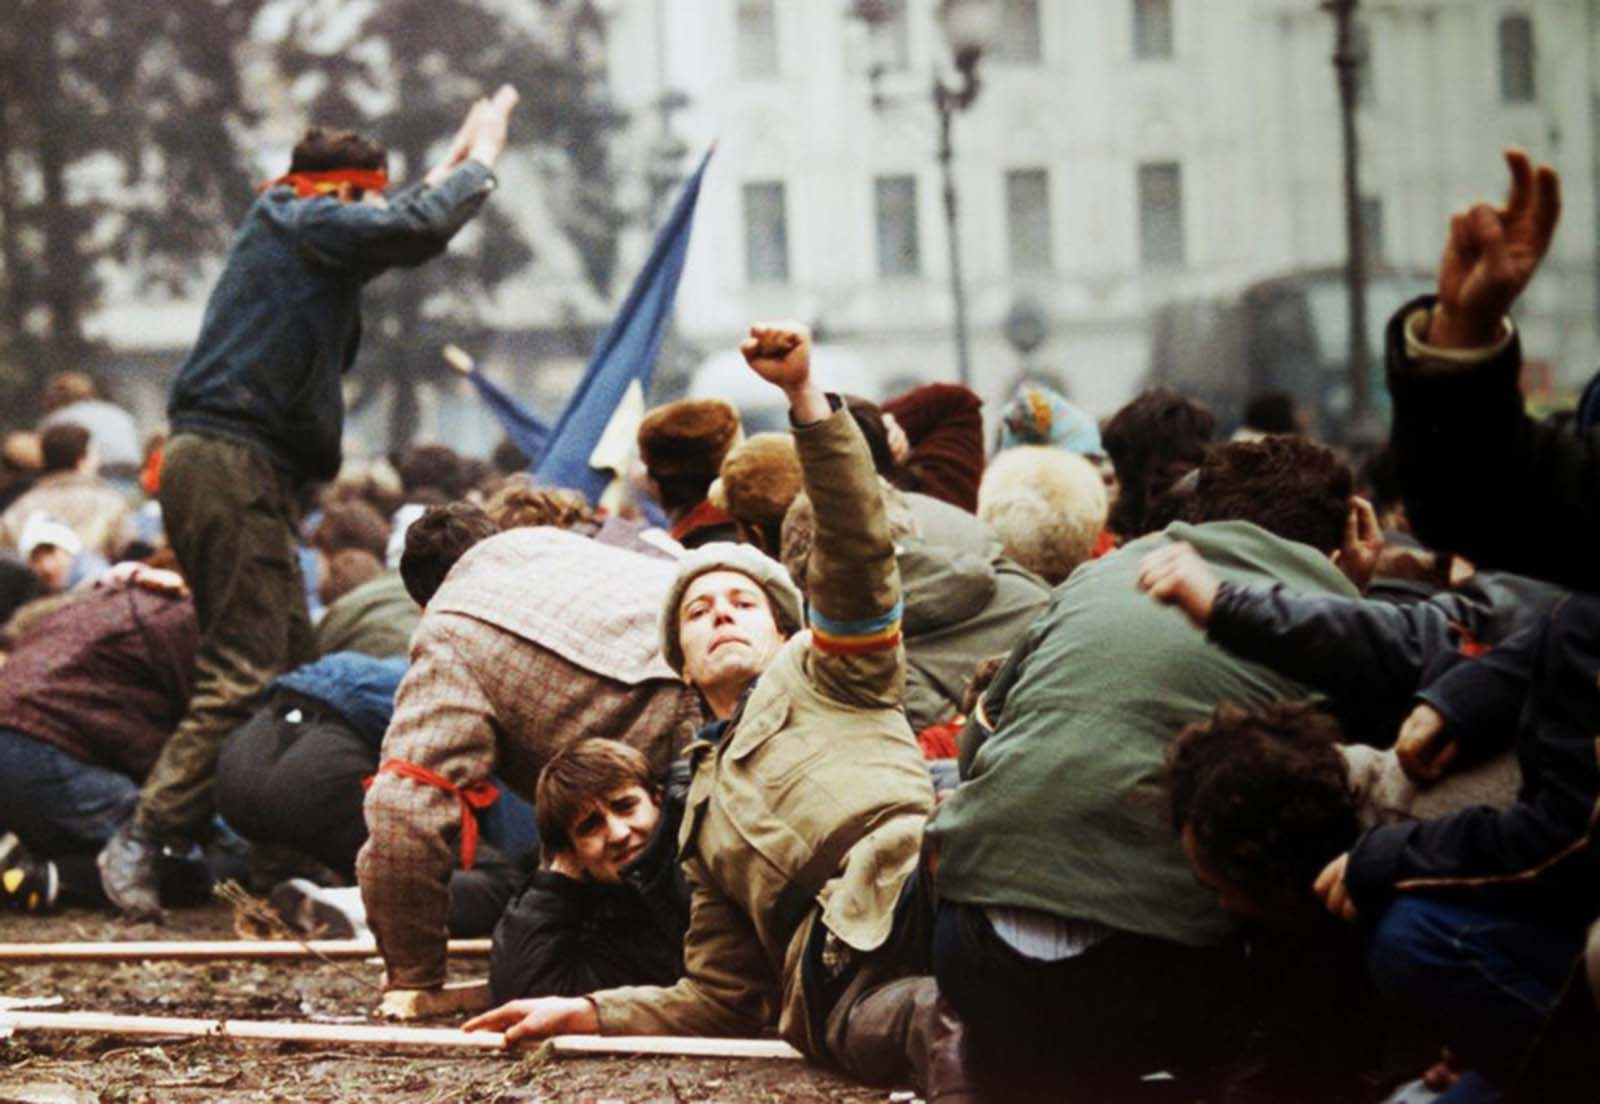 An anti-Ceaucescu revolutionary makes a V-sign as demonstrators lie on the ground to escape from the crossfire between the pro-Ceausescu troops and anti-regime supporters.